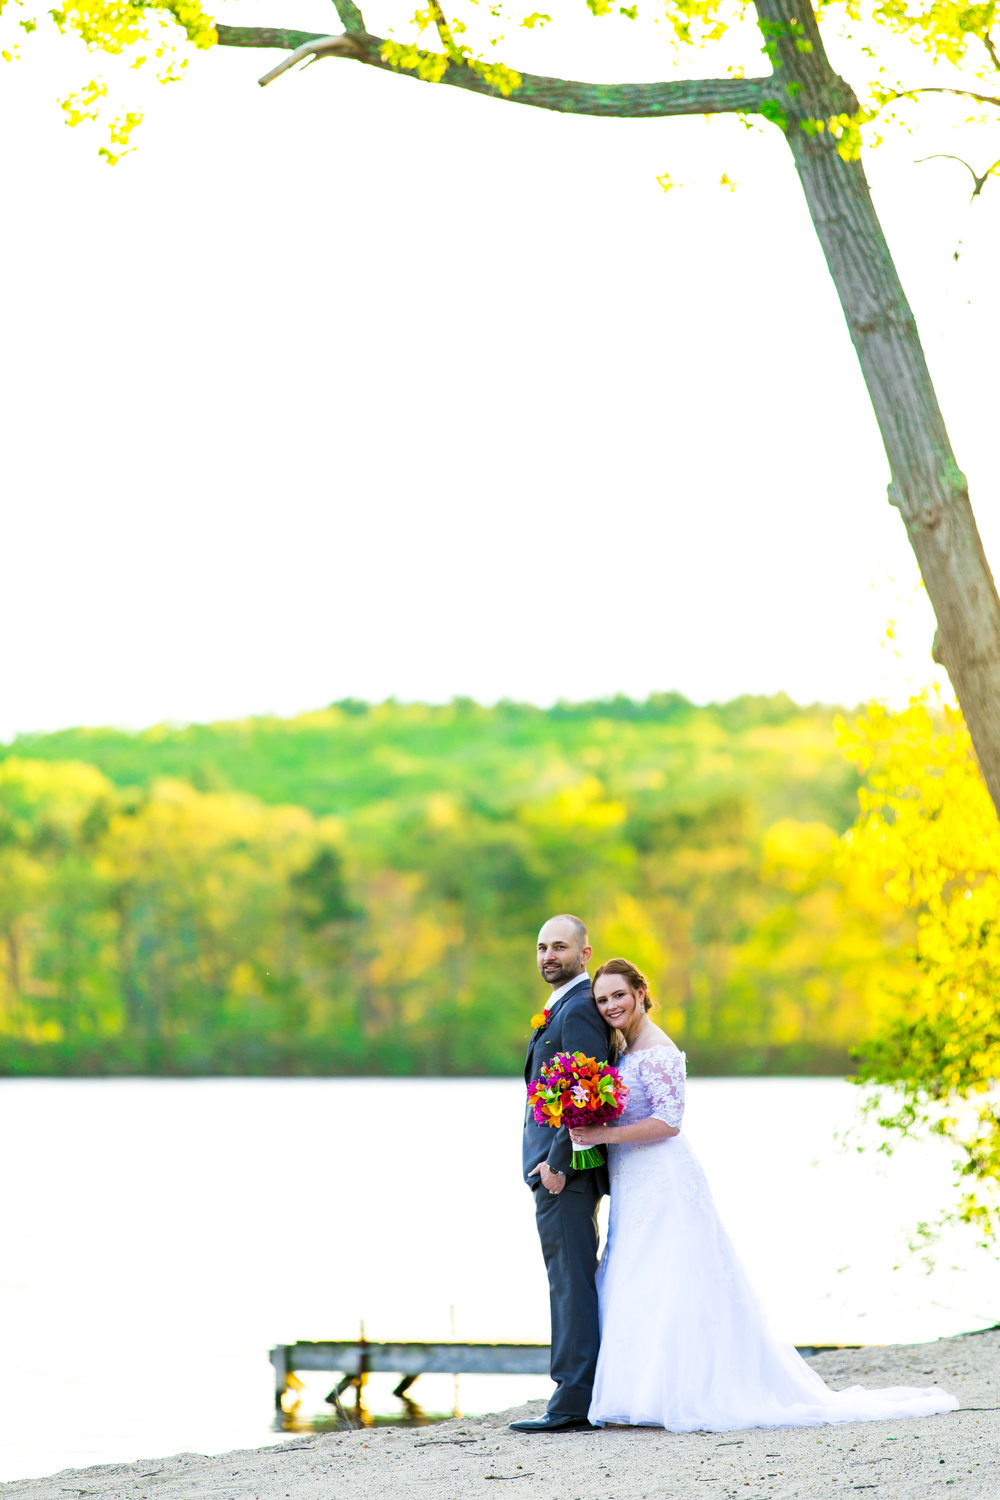 8C2A8047+Giovanni+The+Photographer+Top+Wedding+Photography+Lake+Pearl+Wrentham+Ma.jpg